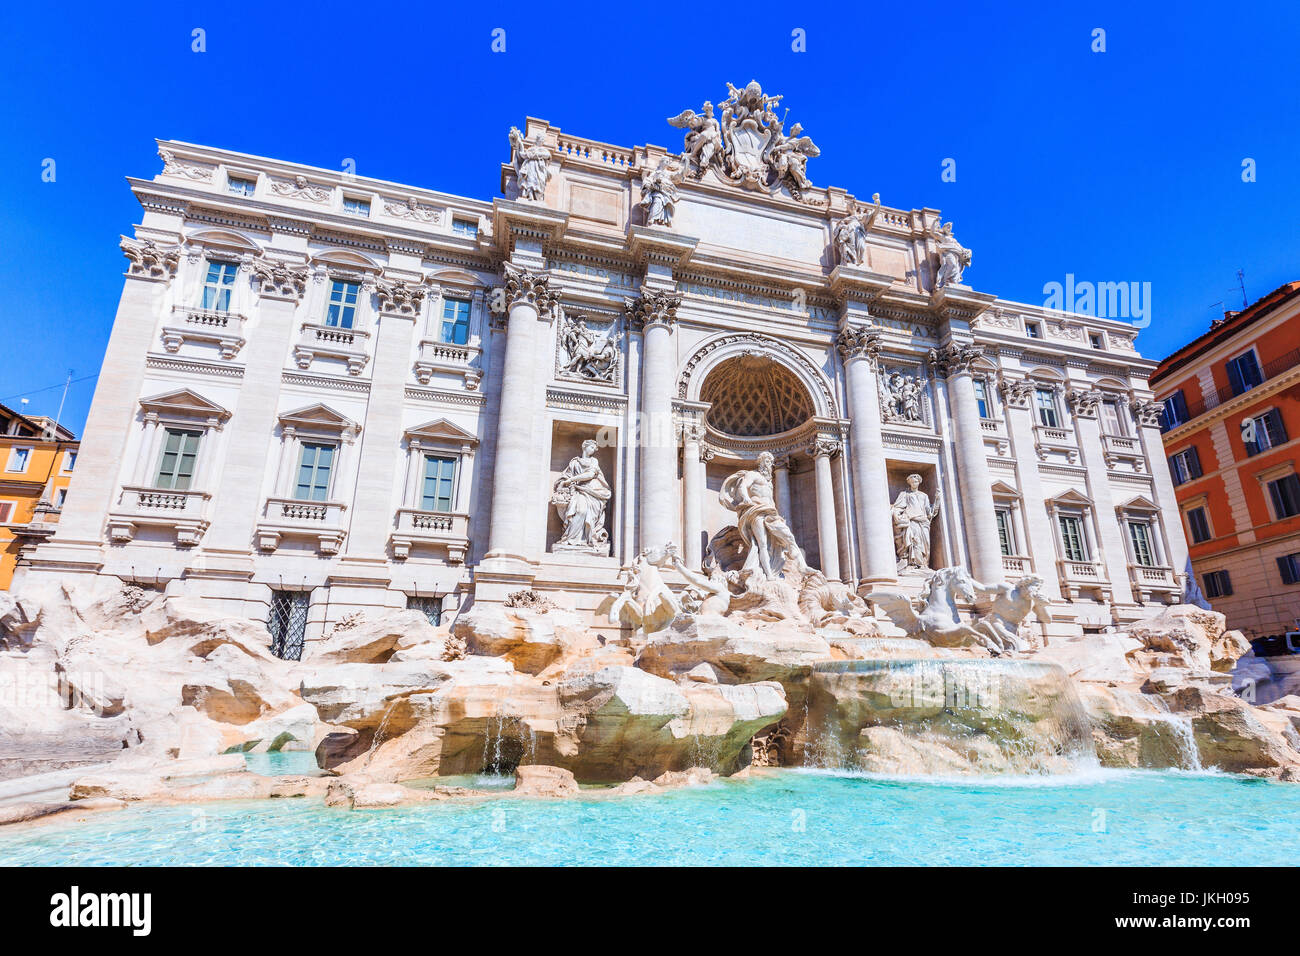 Rome, Italy. Trevi Fountain (Fontana di Trevi) most famous fountain of Rome. - Stock Image